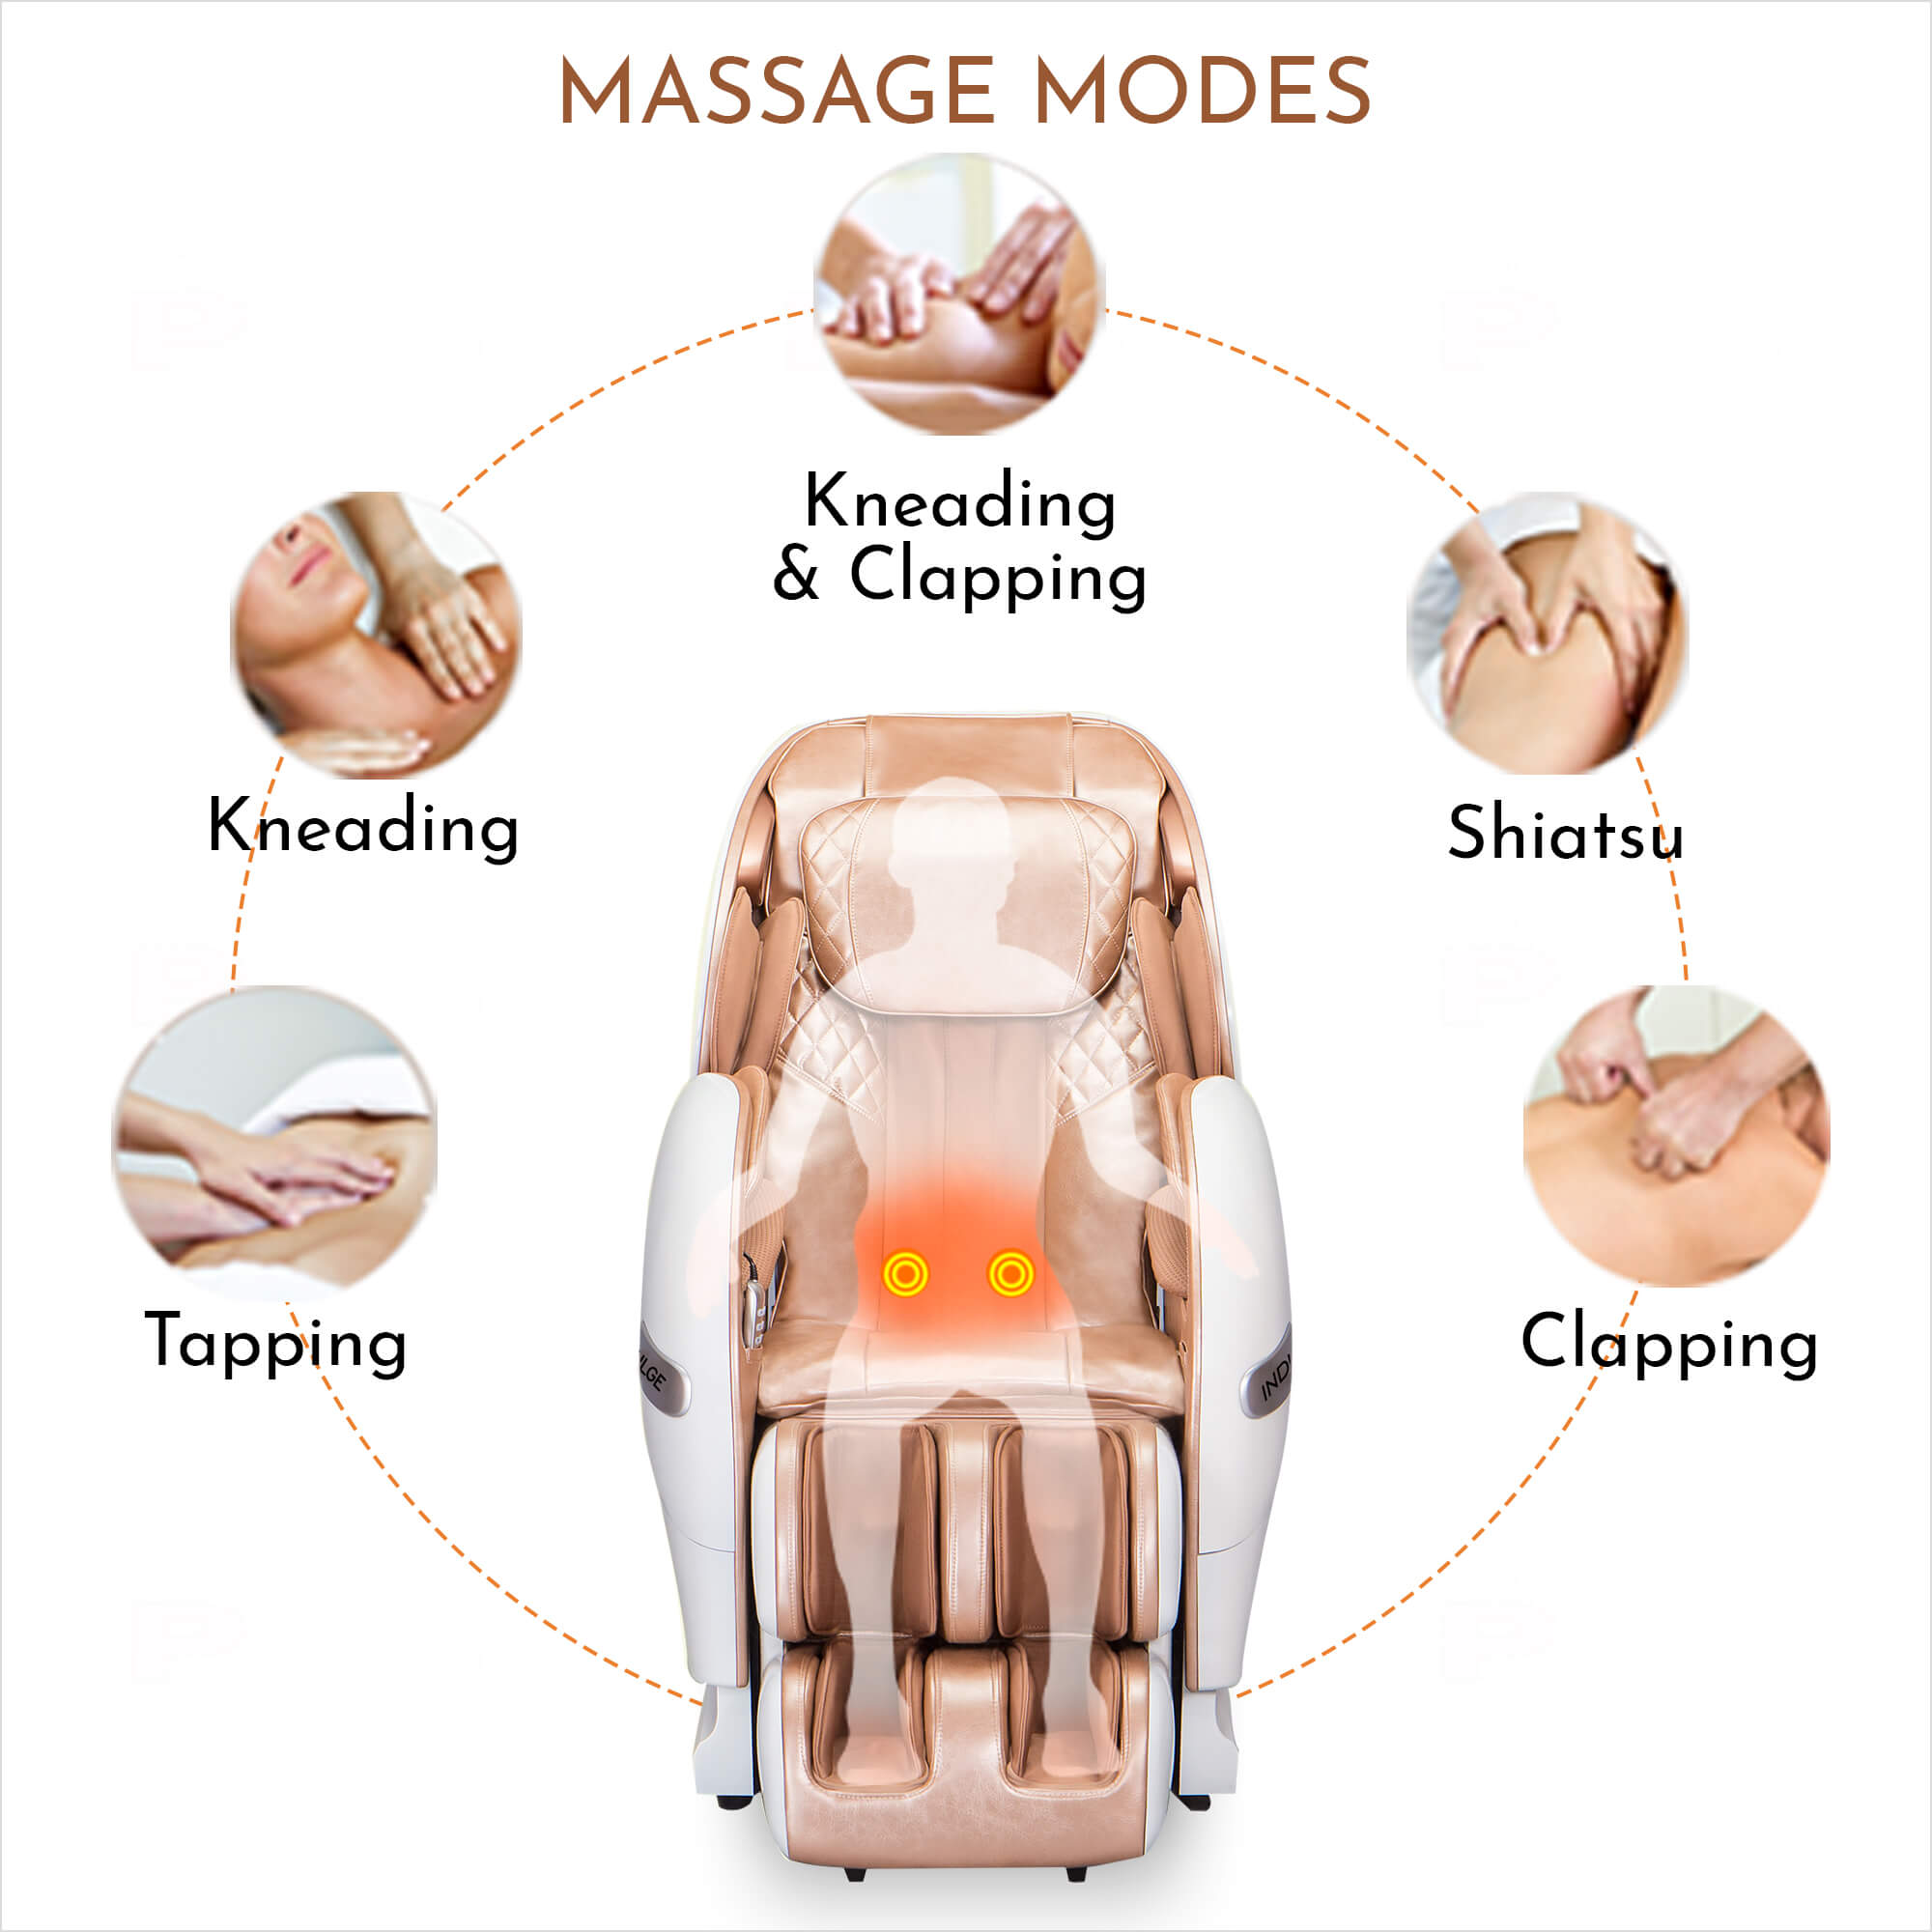 Indulge imOnCloudNine-3 Full Body Massage Chair with UltraThin 3D Massage Technology